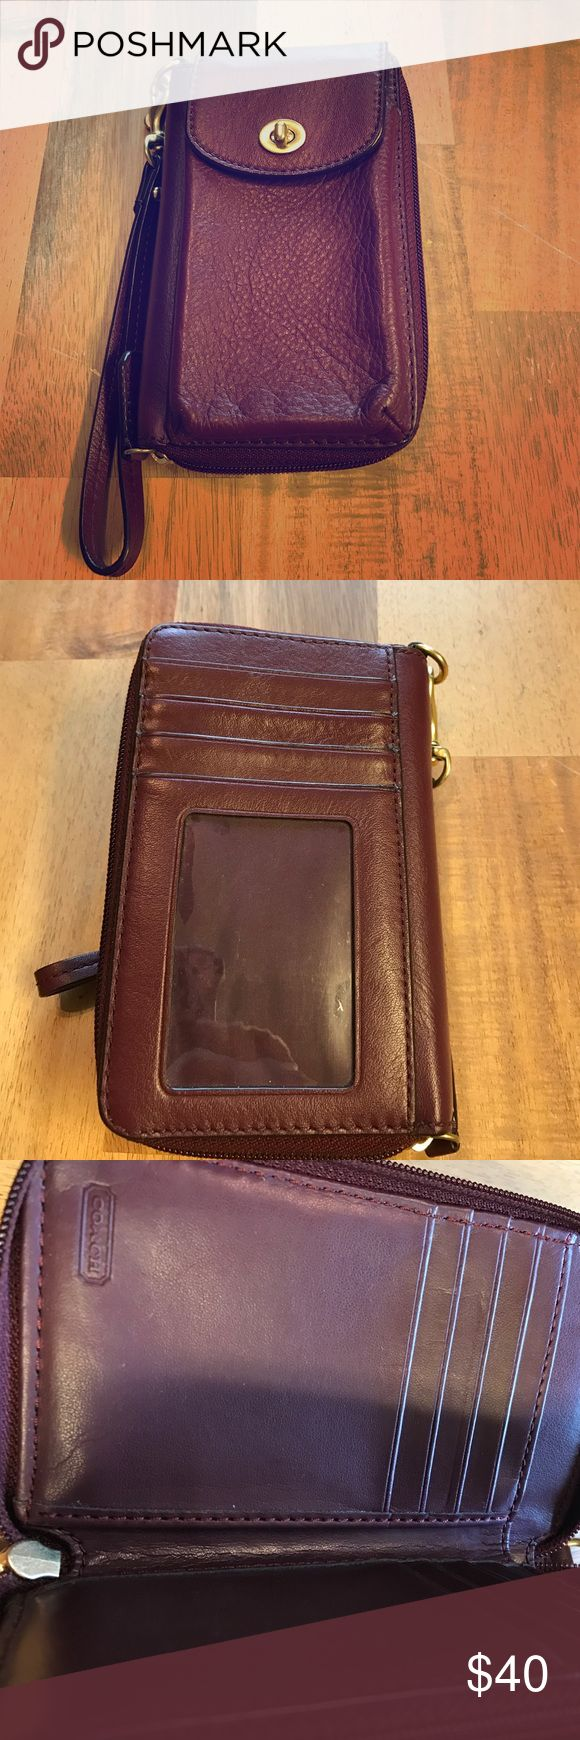 Authentic Coach leather wristlet/wallet Authentic Coach. Outside has spot for identification and credit cards. Other side has secure twist lock spot for cell phone. Inside has zipper coin pouch, credit card spots and space for cash. Like new. No flaws. Coach Bags Clutches & Wristlets